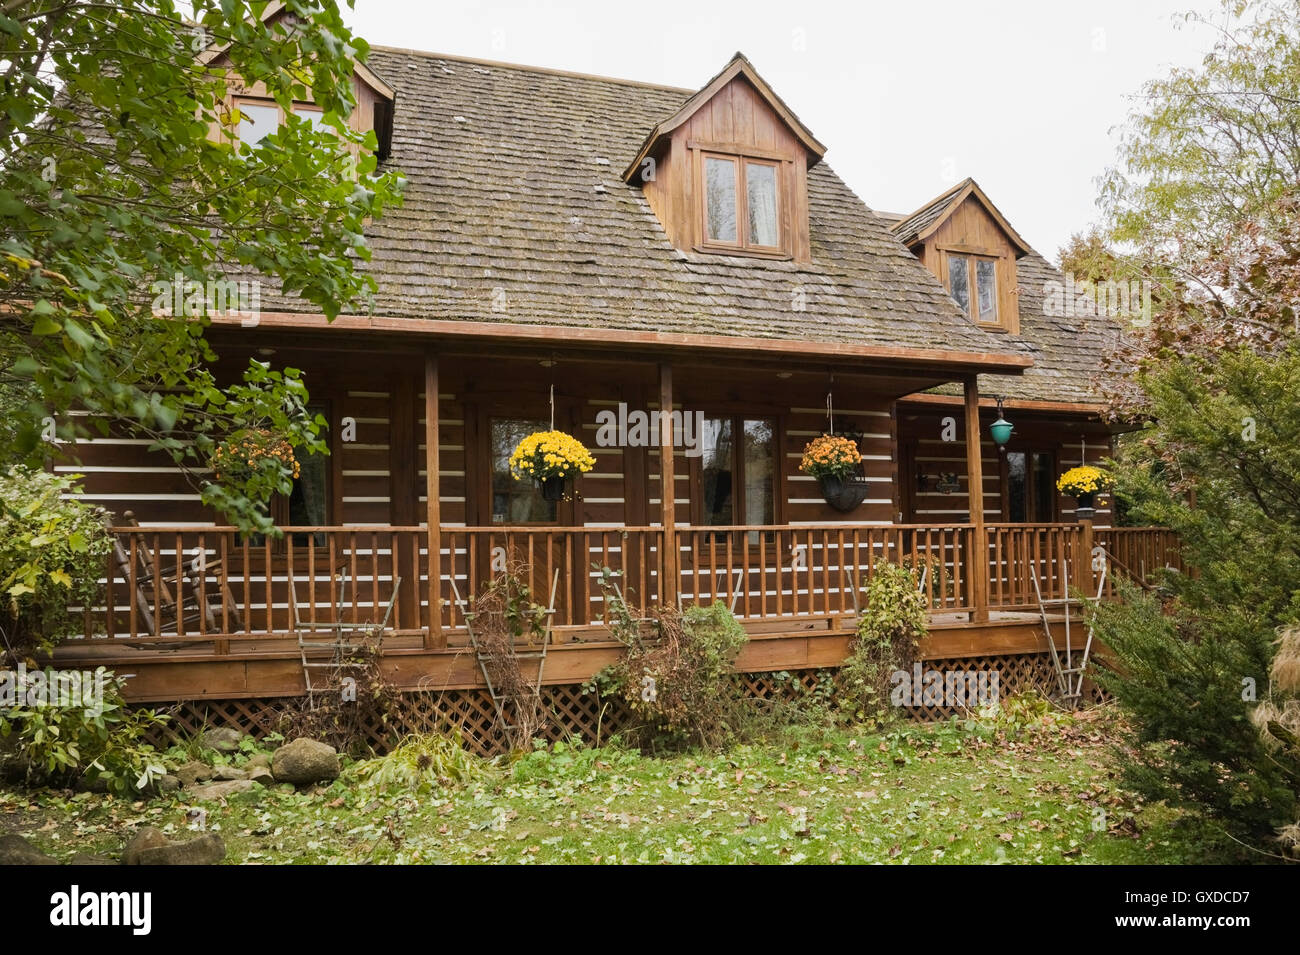 Rustic Canadian cottage style log home facade and landscaped front lawn in  autumn  Quebec  Canada. Rustic Canadian cottage style log home facade and landscaped front